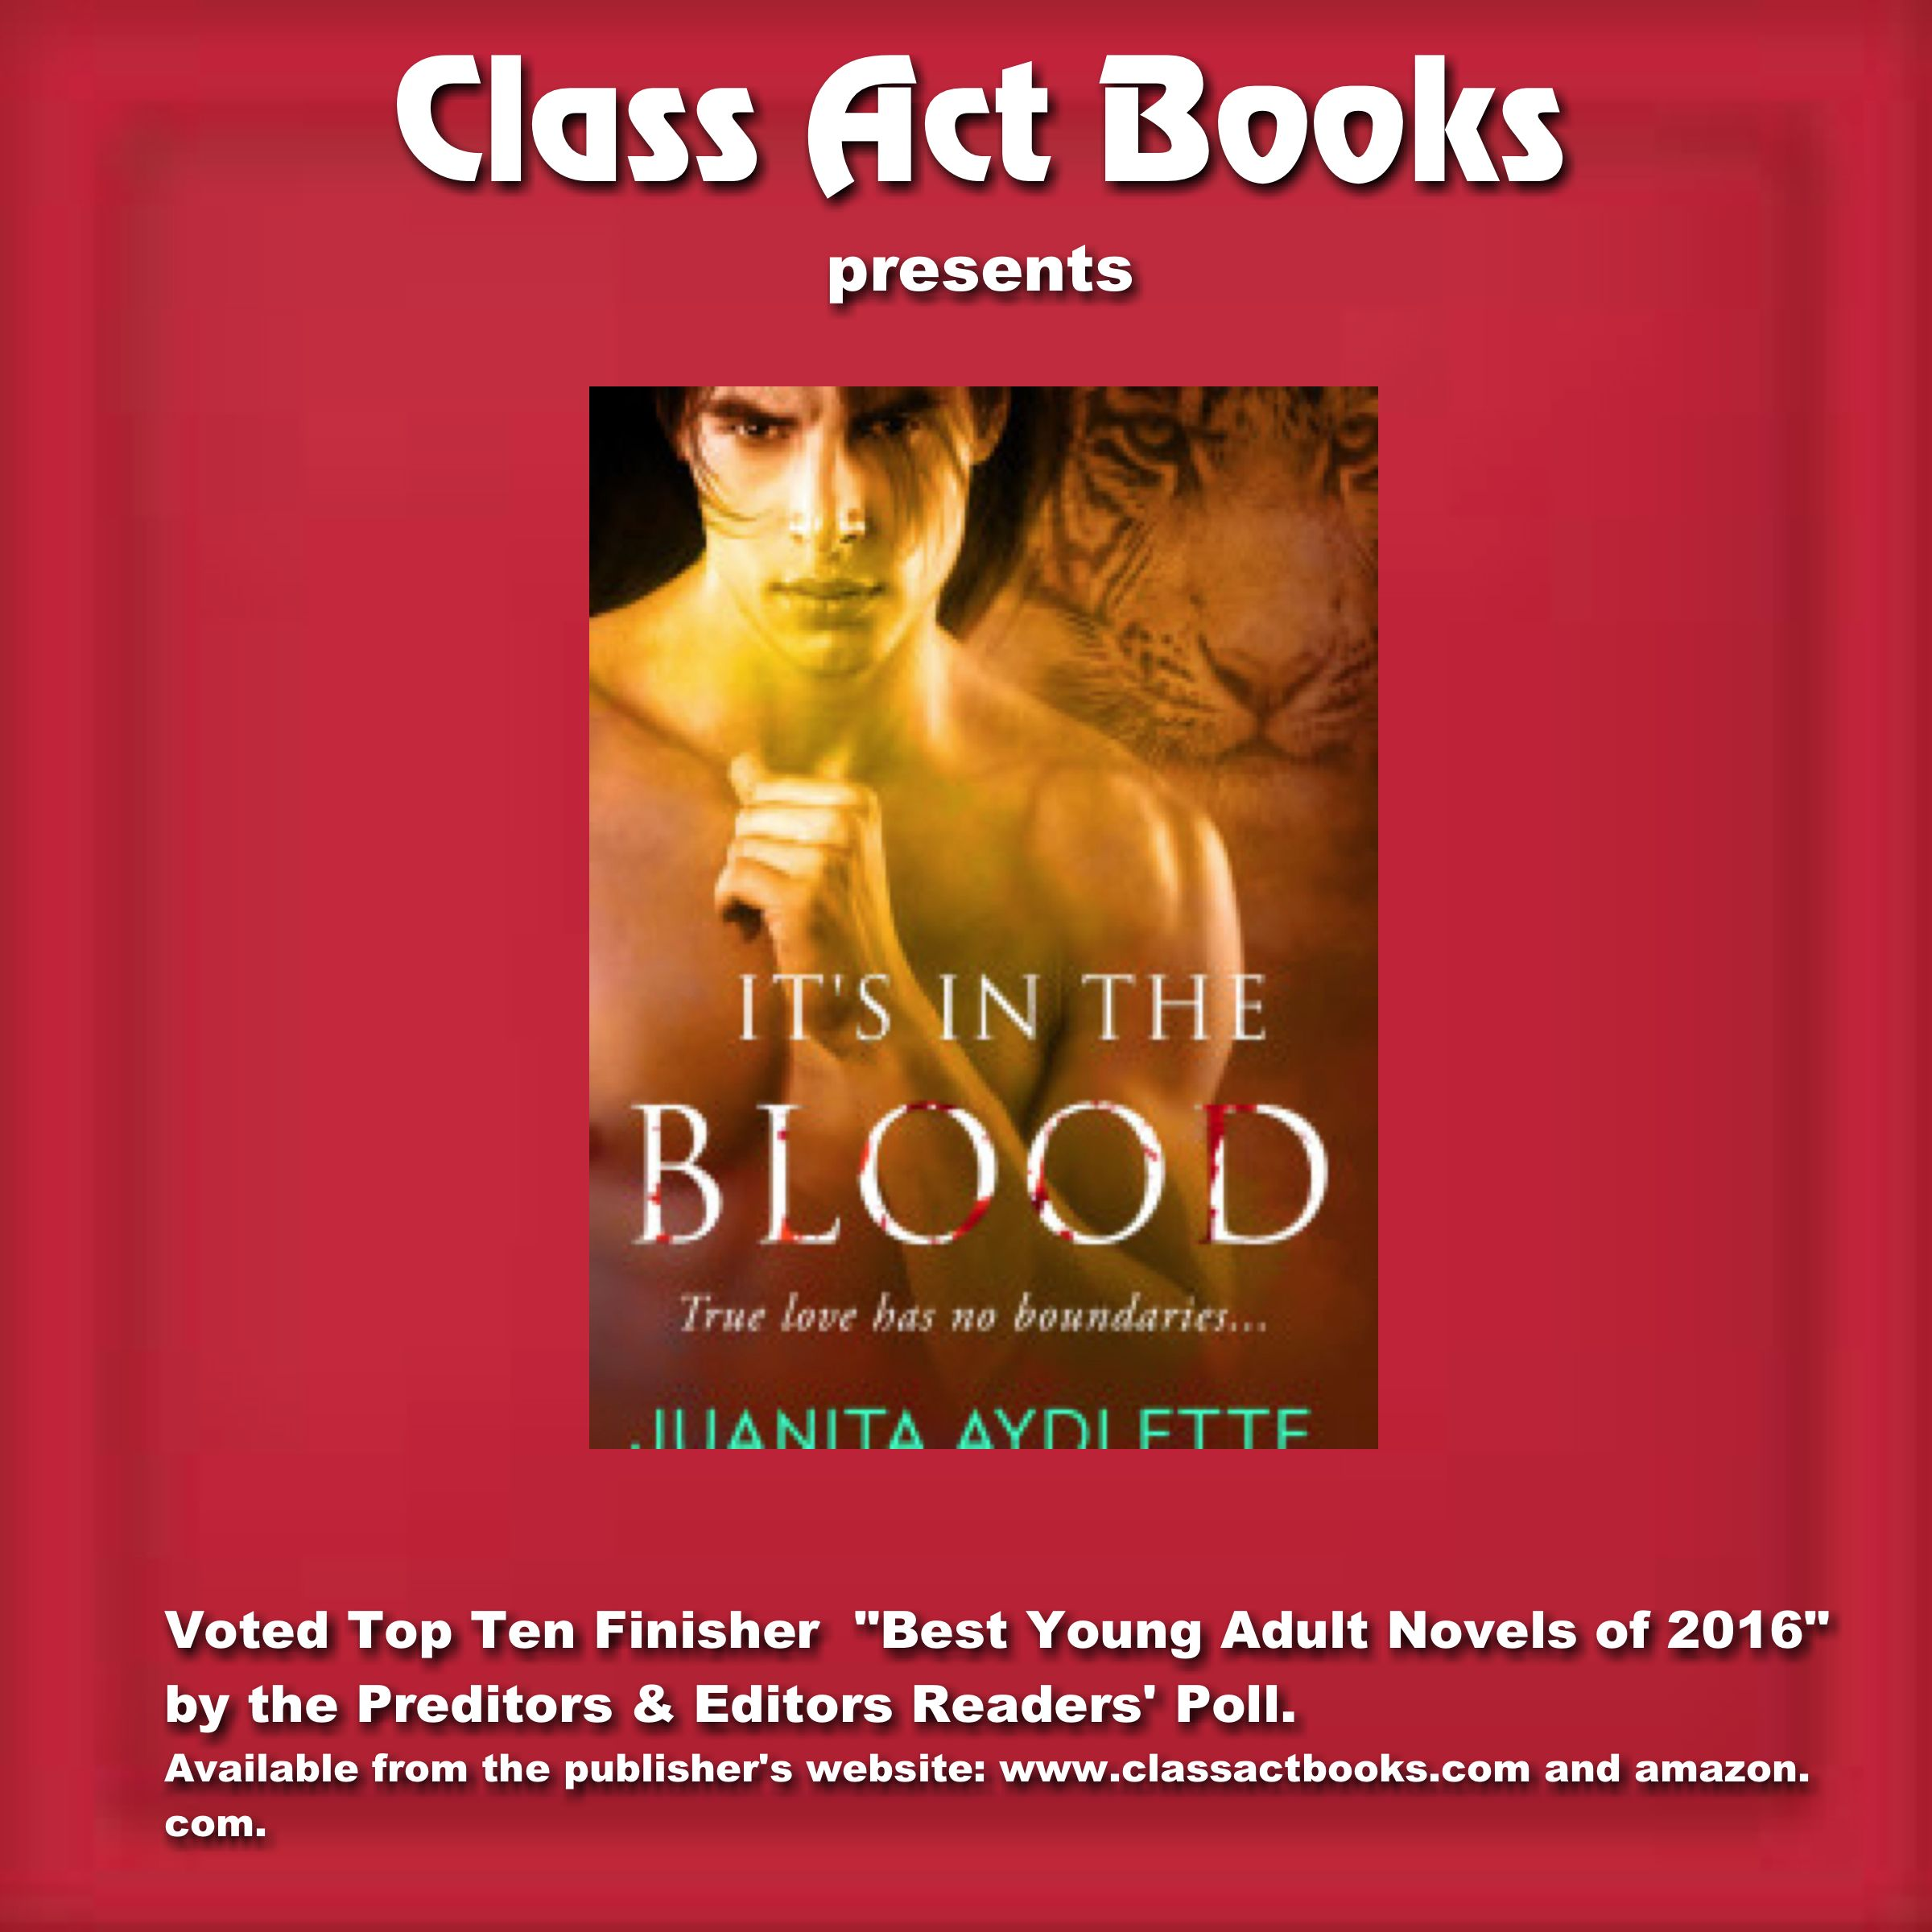 essay fight against corruption india The position today is that corruption could damage people's lives as our lifestyle includes corruption like a bungalow, car, servants, clubs, etc corruption: essay, article, paragraph, speech in india, political corruption is worst.